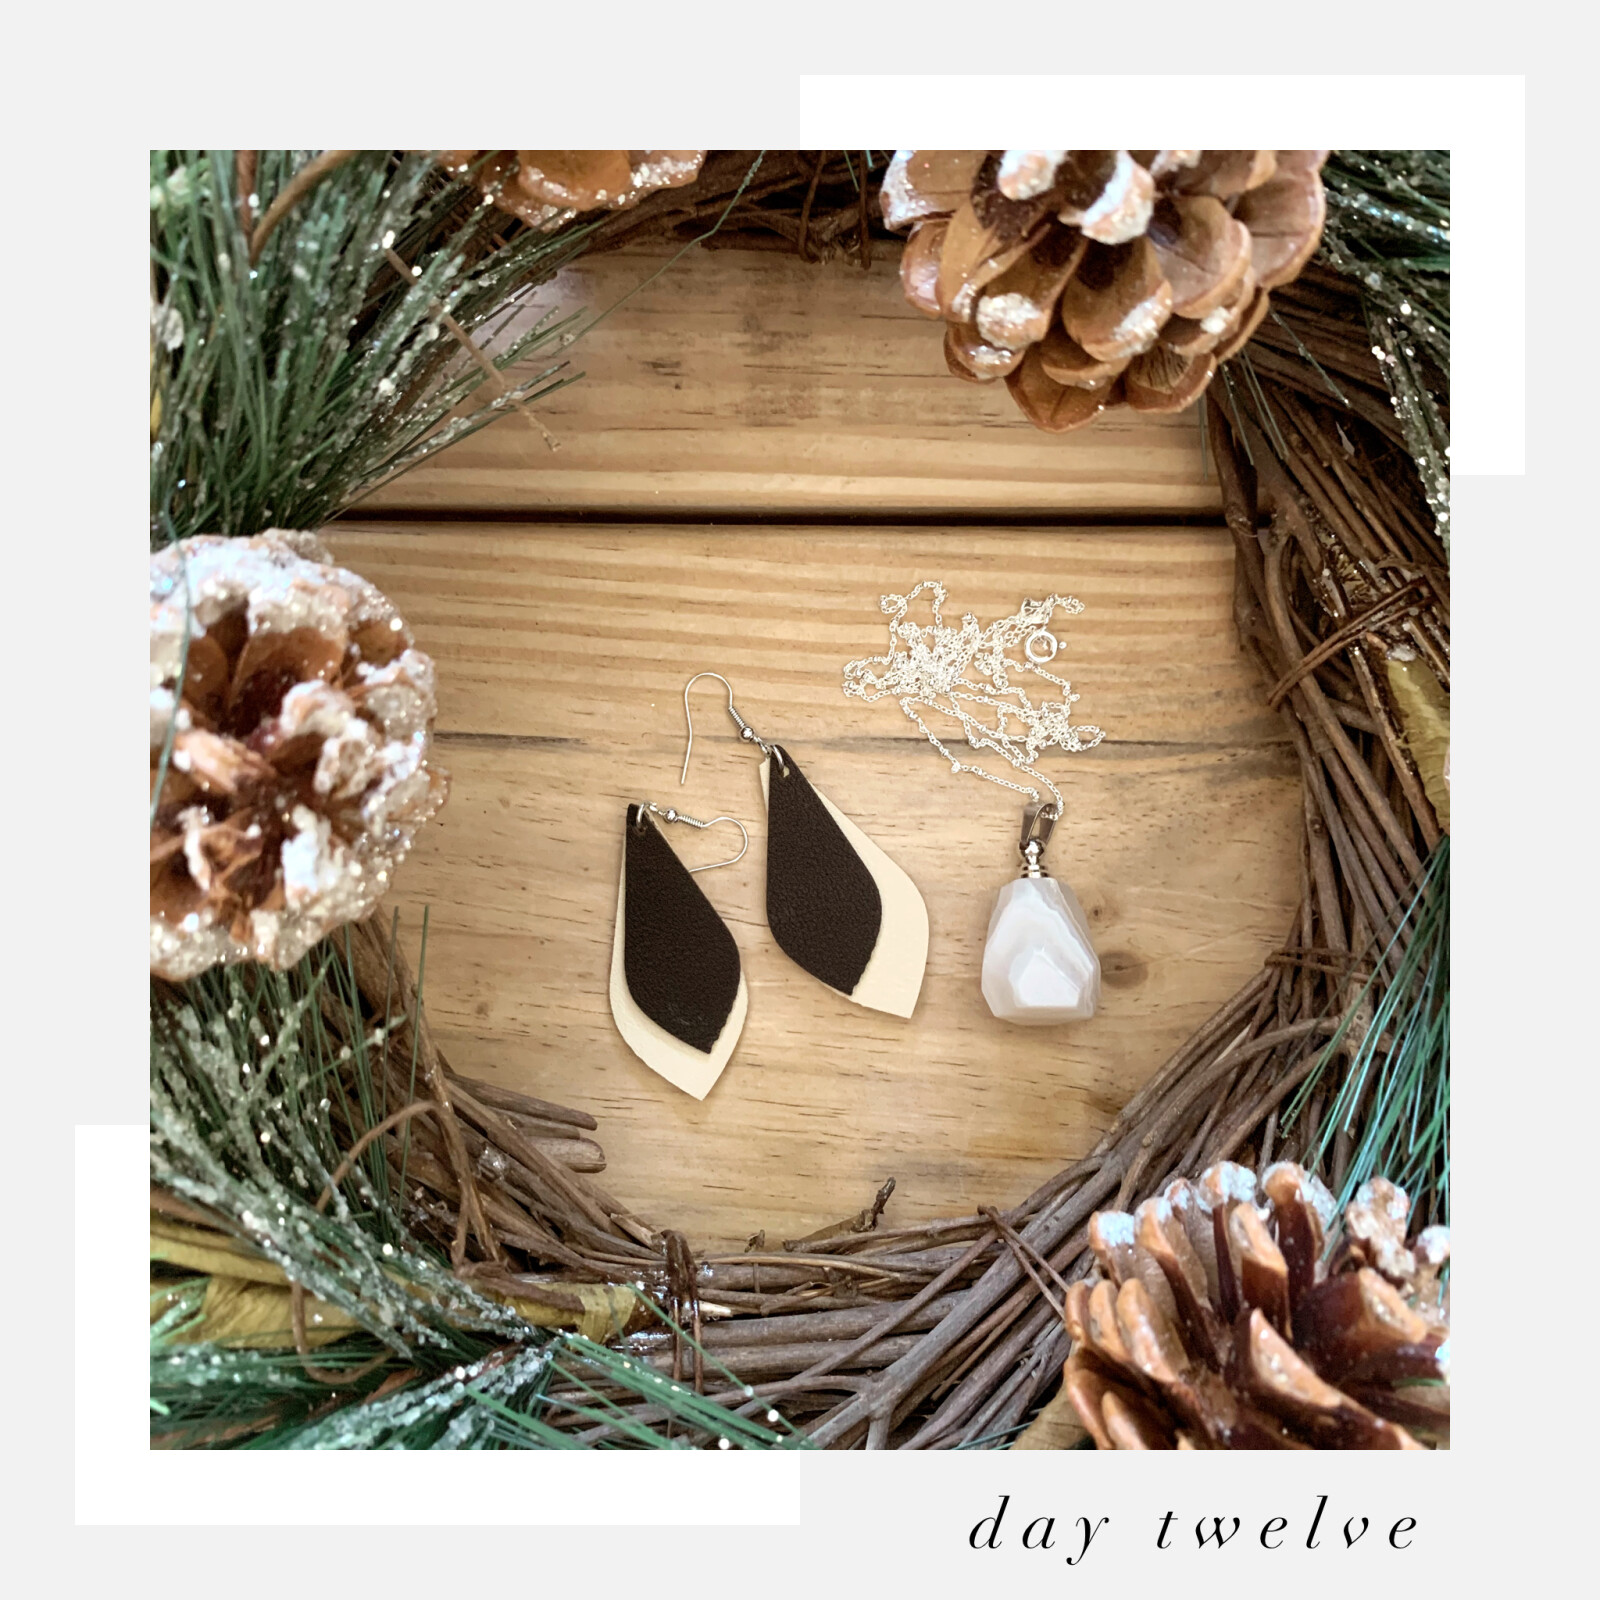 12 Days of Giveaways: Day 12 - Aroma All Day